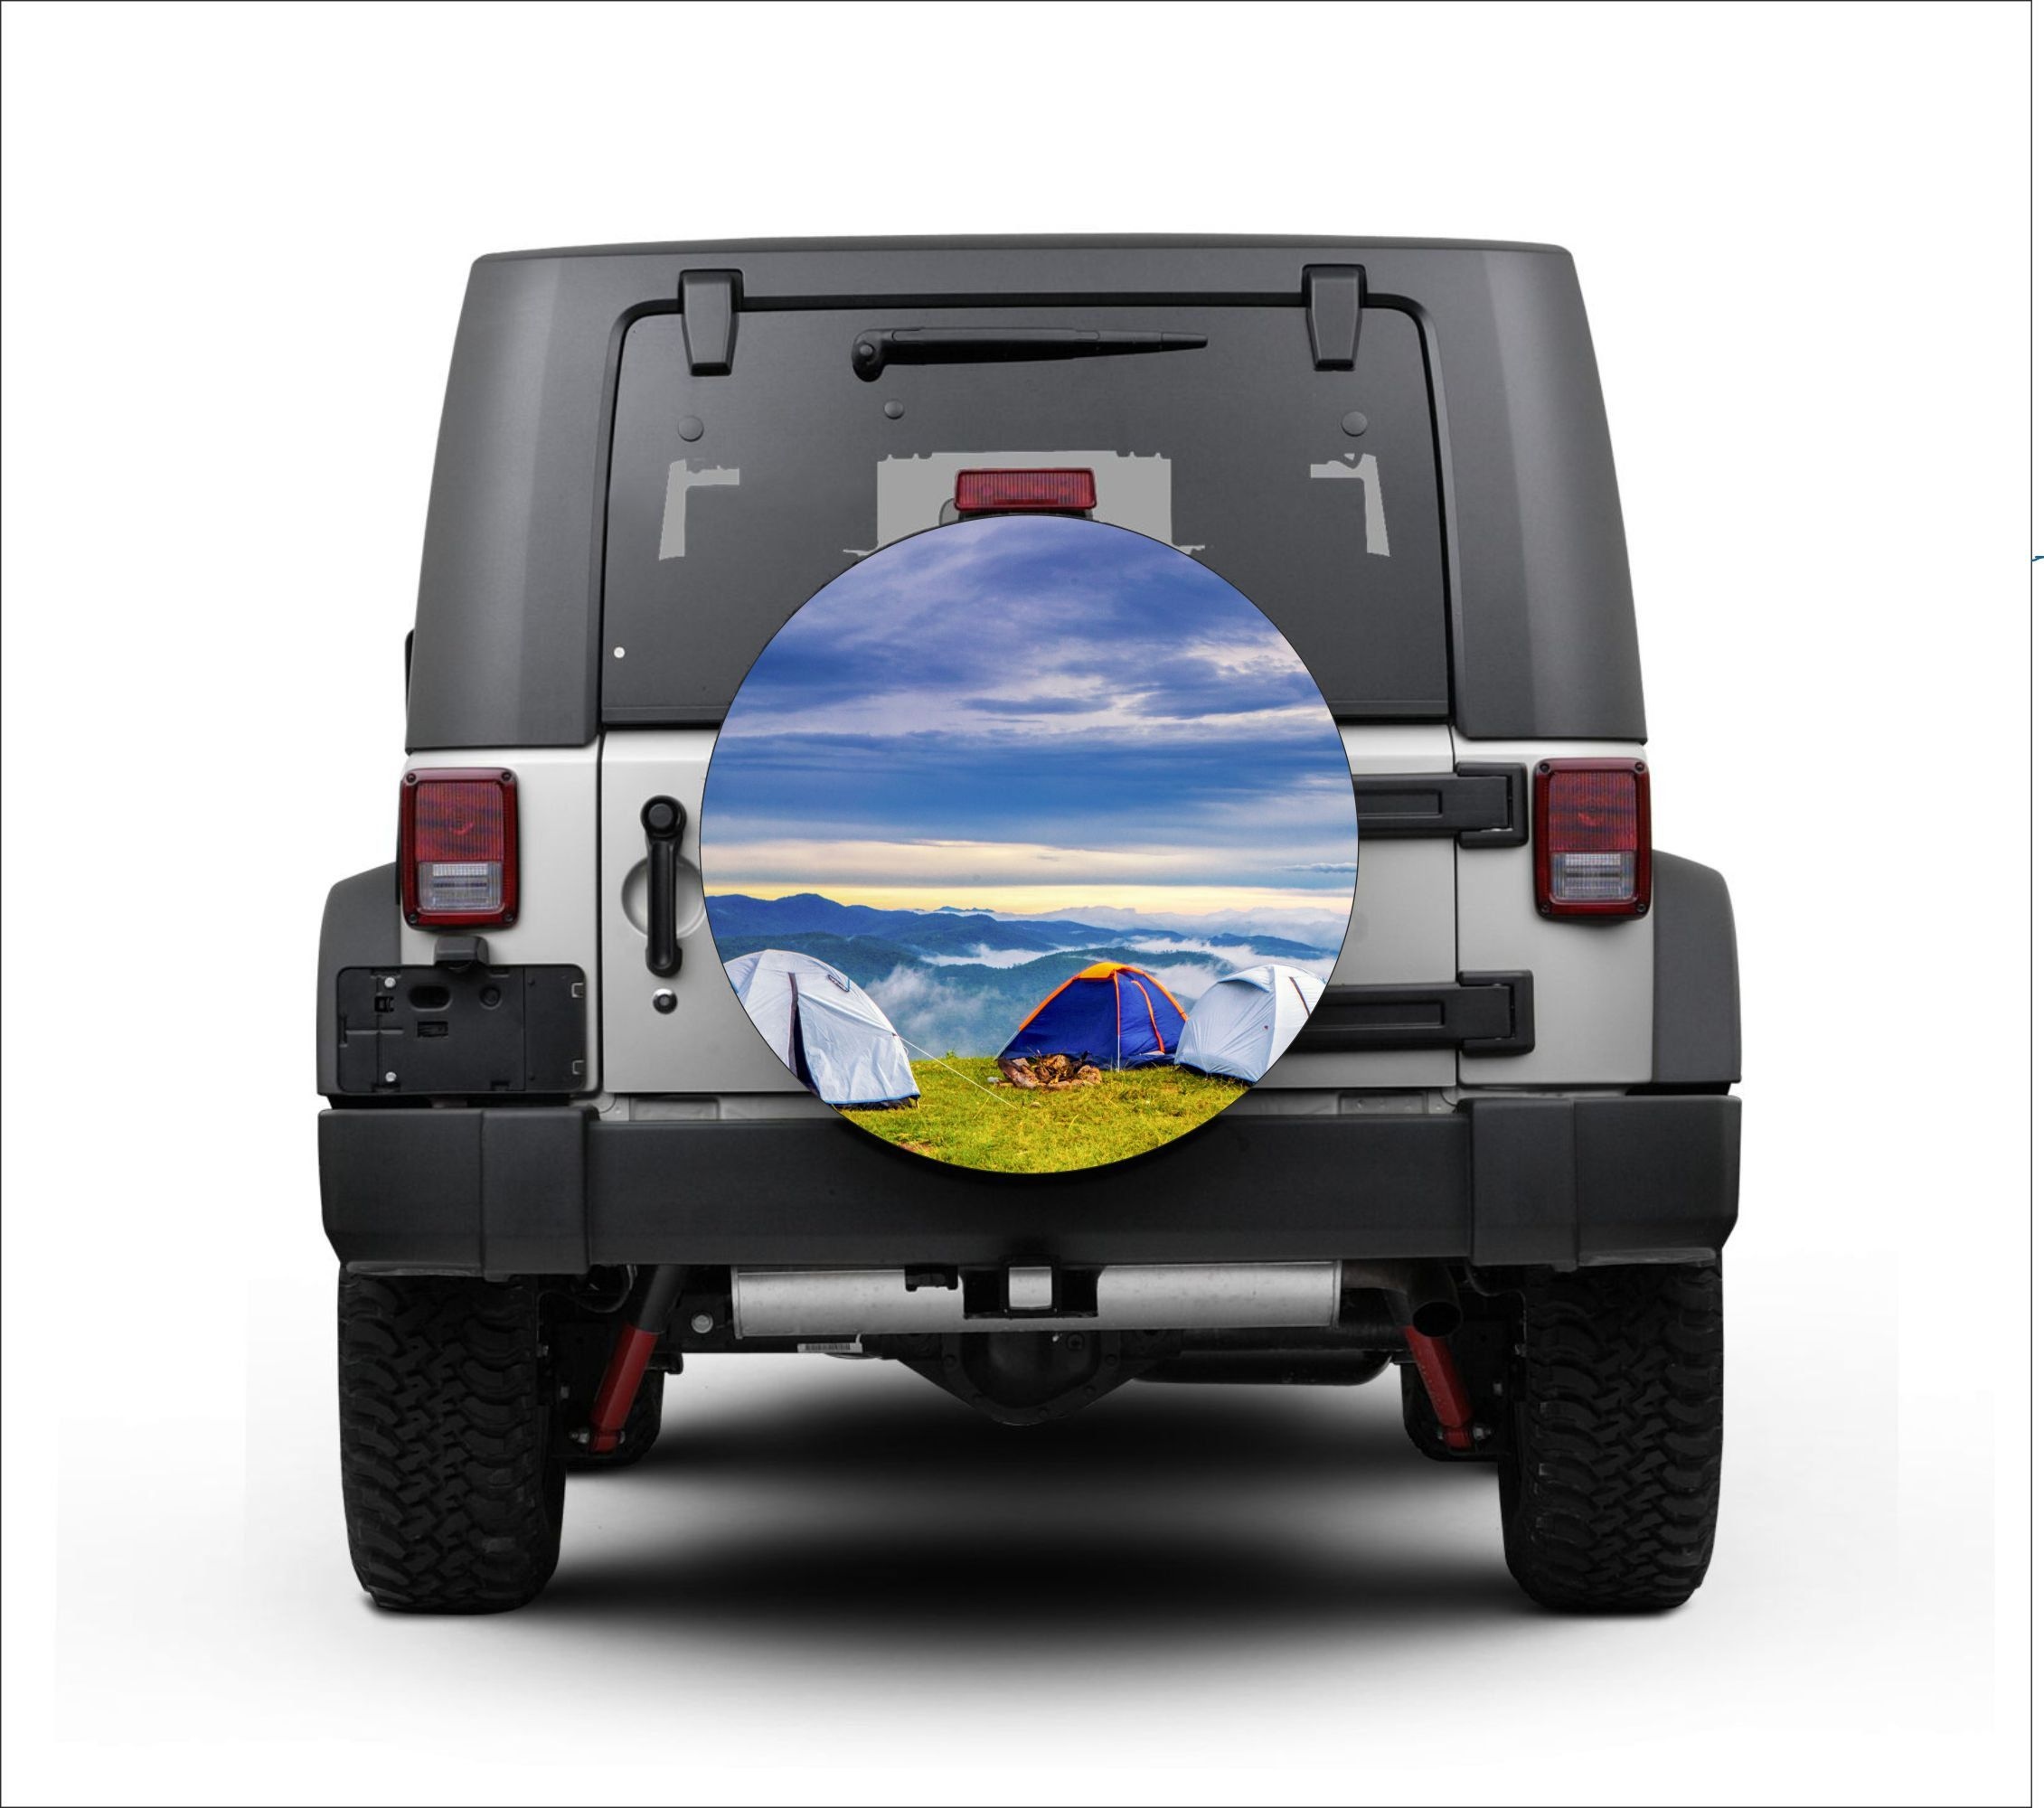 Universal Tire Cover Wheel Cover For Jeep Wrangler Beautiful